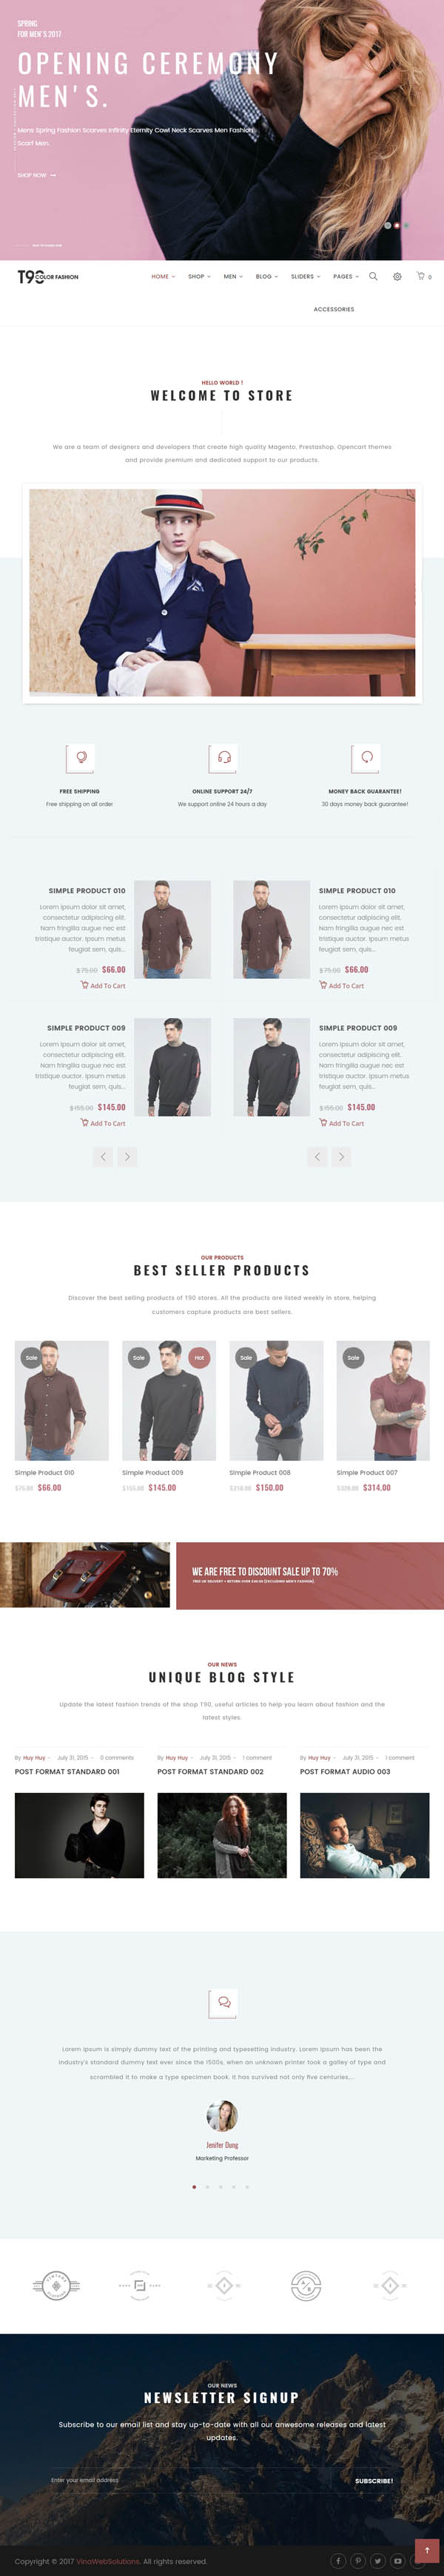 VG T90 – Clean, Minimalist WooCommerce WordPress Theme